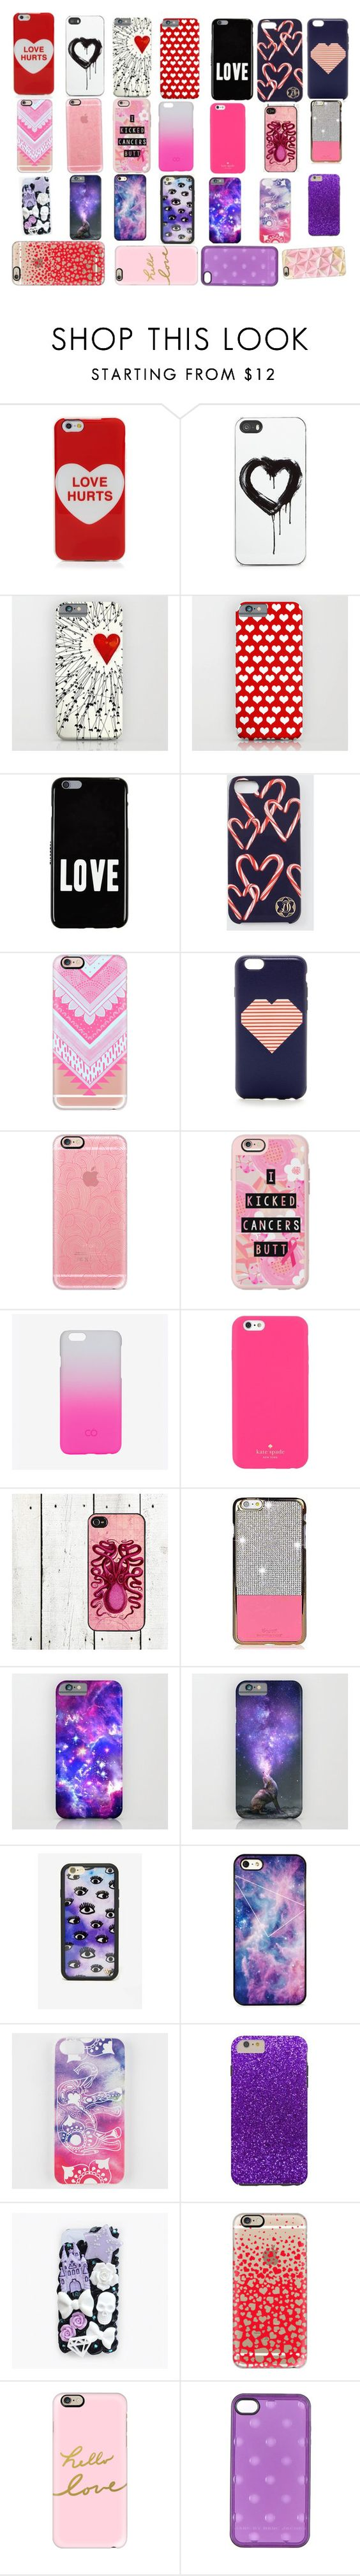 """""""Valentine's Day phone cases!"""" by madison-e-mccarthy ❤ liked on Polyvore featuring Marc Jacobs, Zero Gravity, Givenchy, Draper James, Casetify, J.Crew, C6, Kate Spade, Wildflower and BlissfulCASE"""